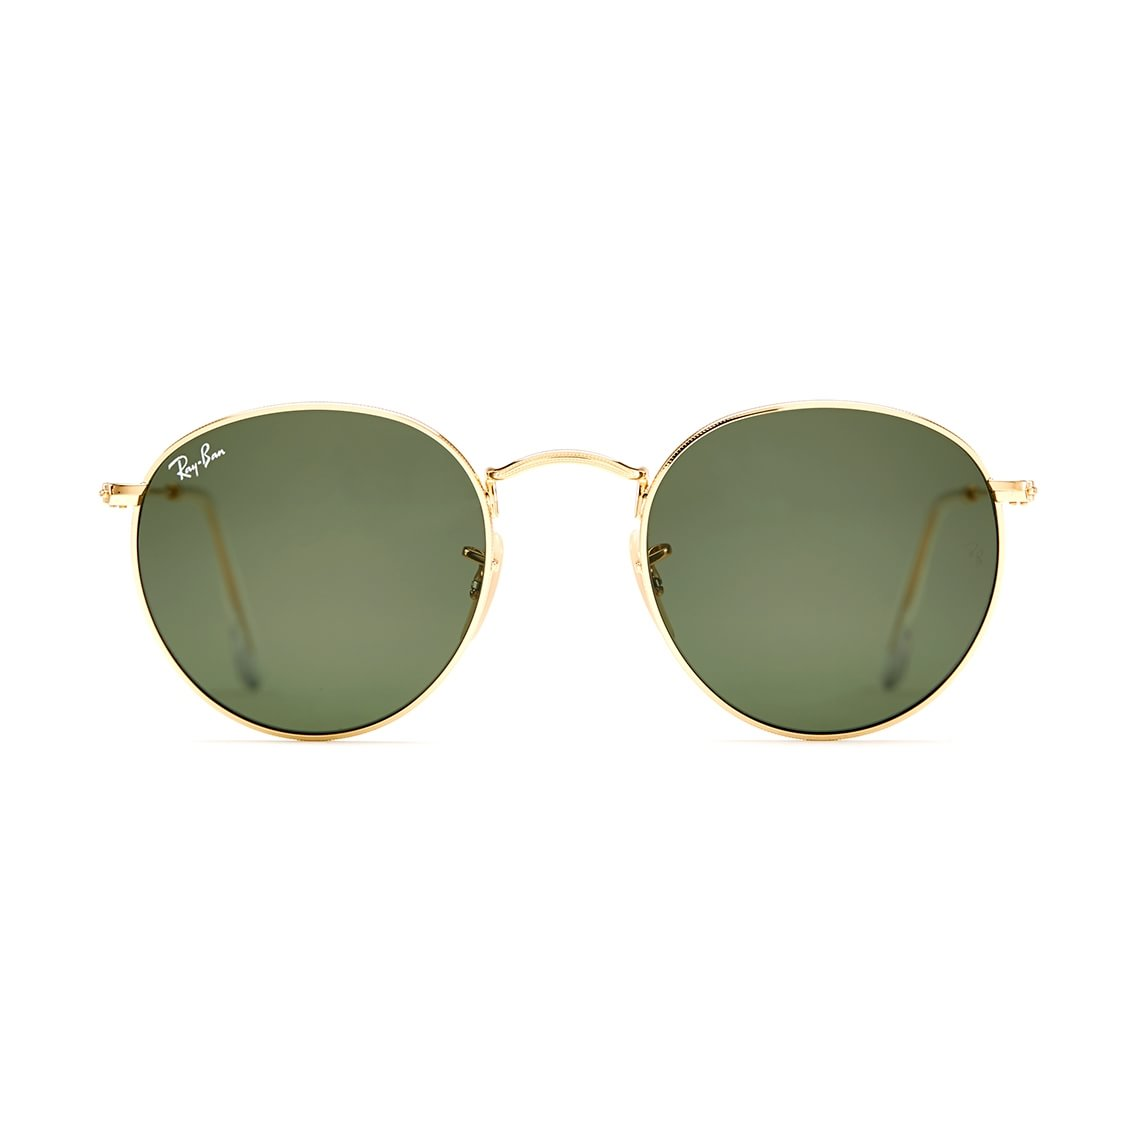 d527d74046c5 Ray-Ban Round metal RB3447 001 50 - Profil Optik